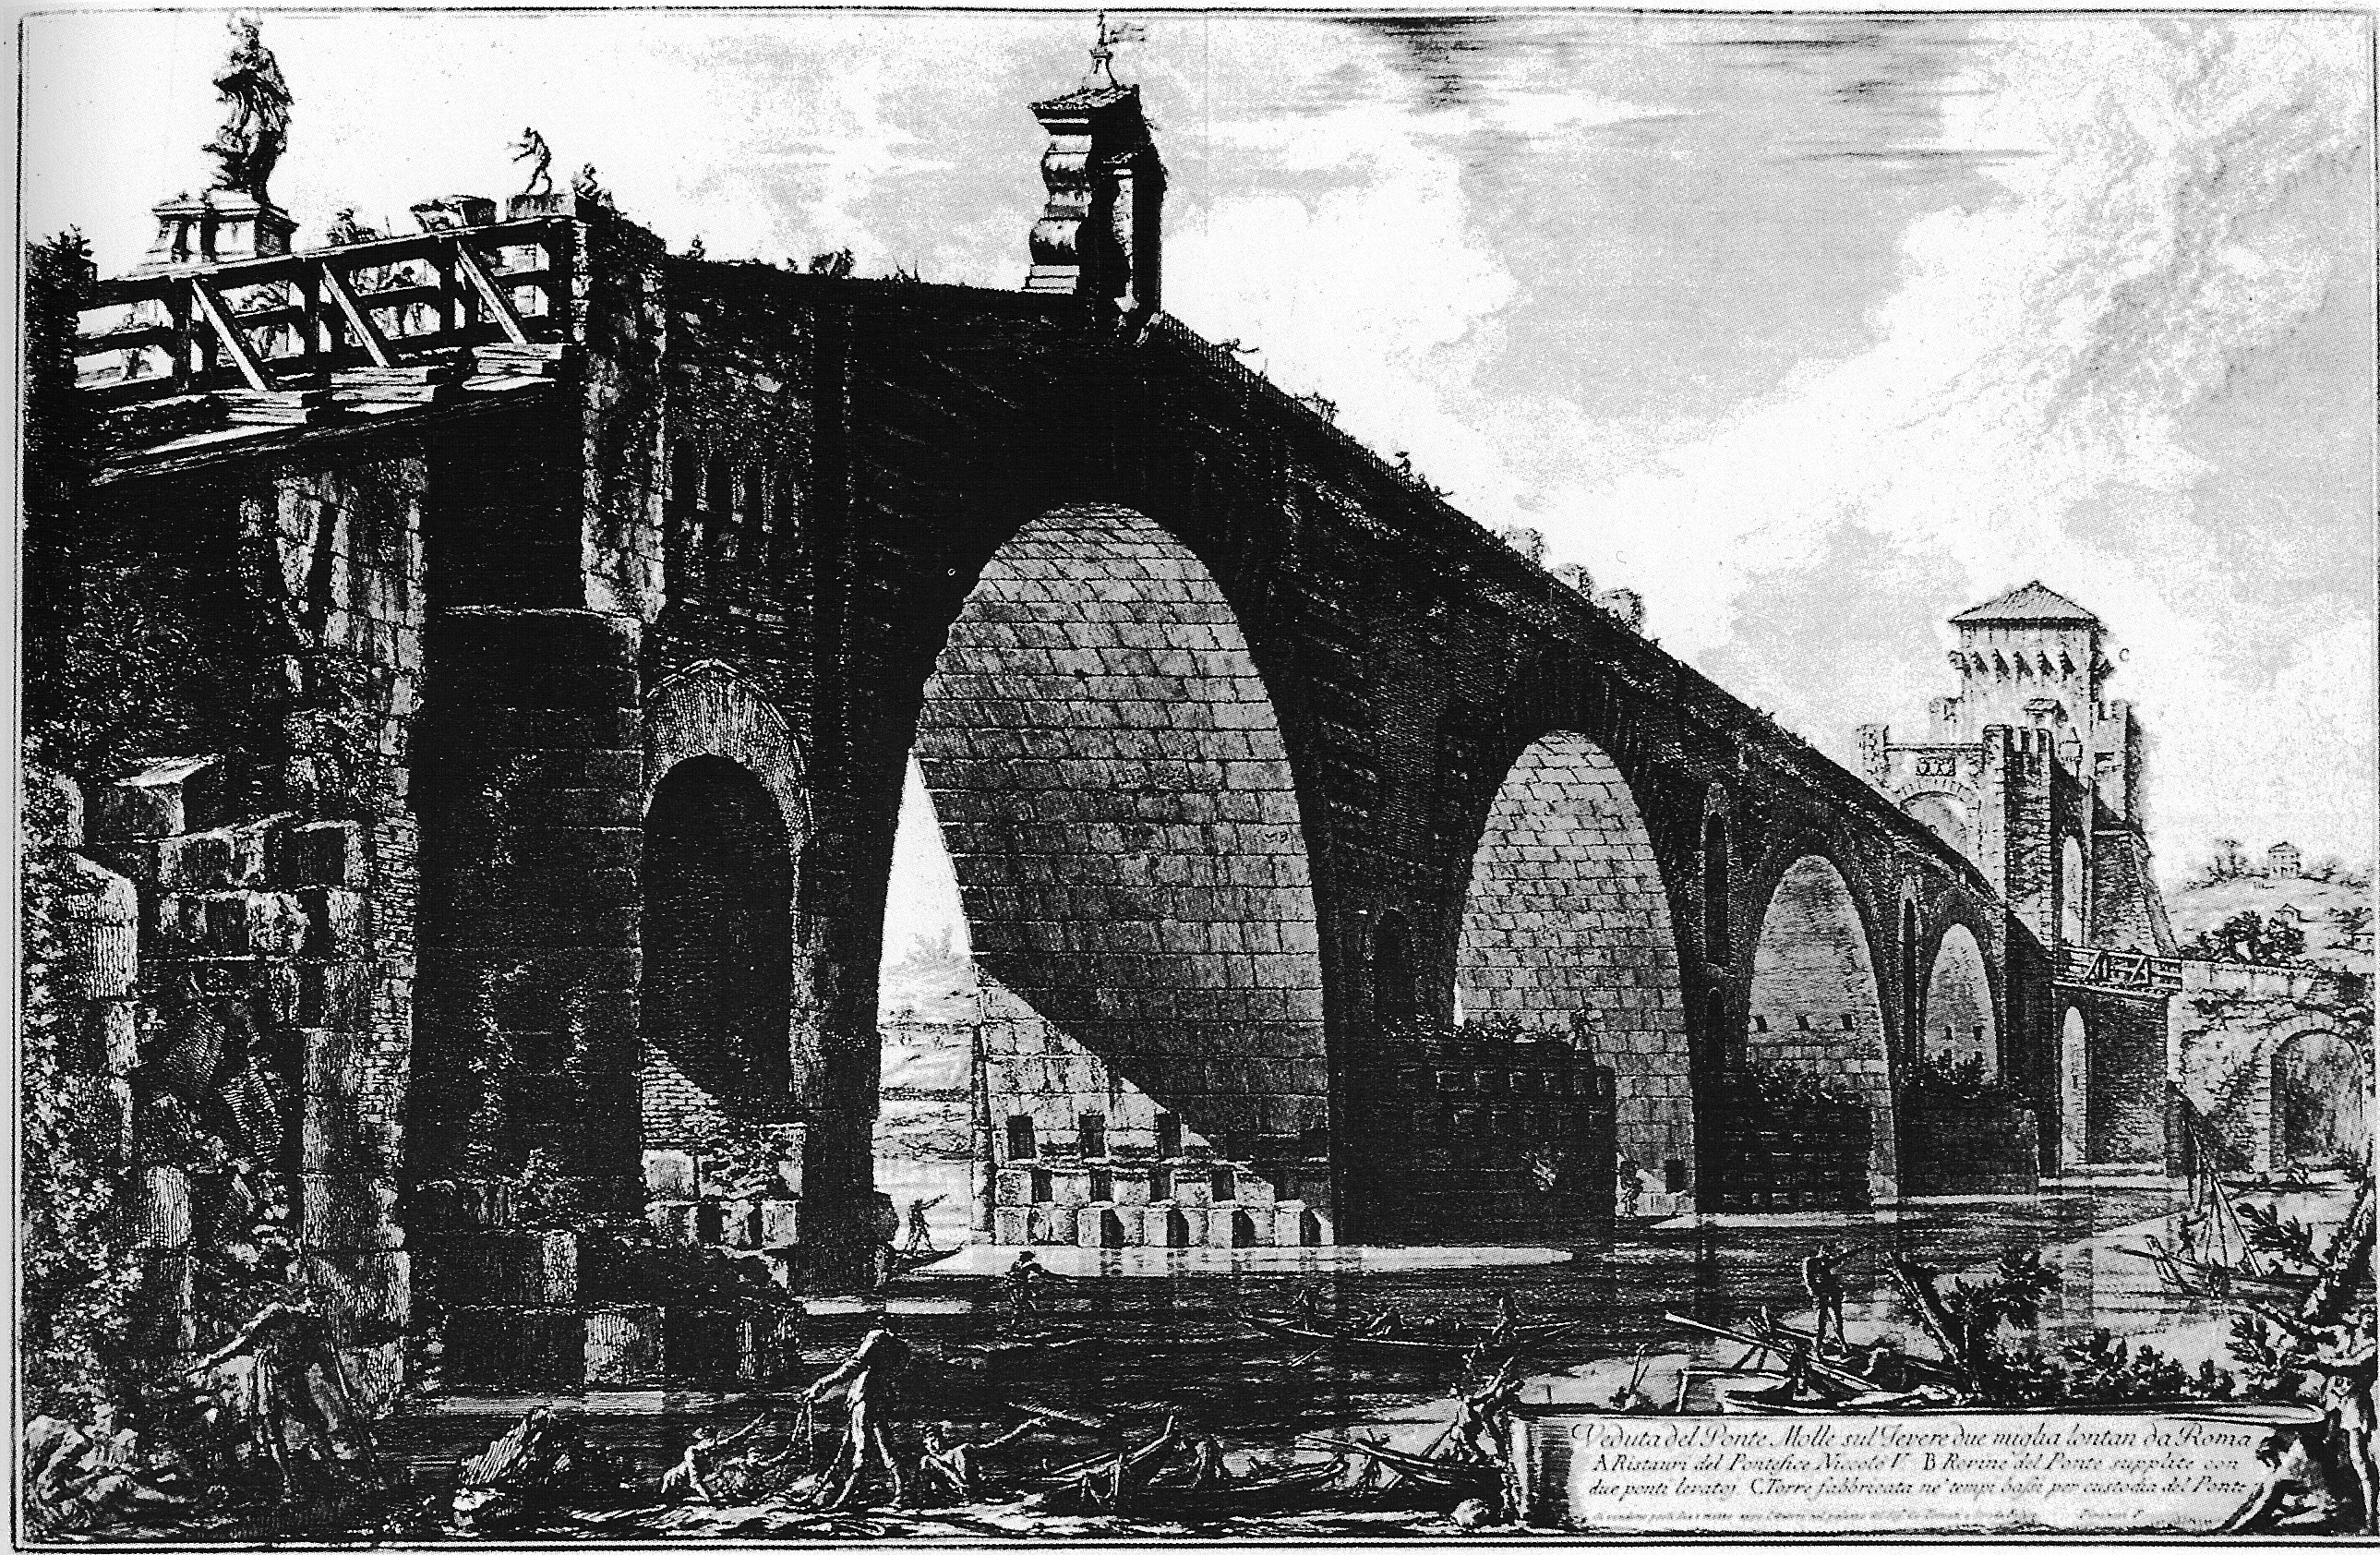 http://upload.wikimedia.org/wikipedia/commons/0/04/Piranesi-Ponte-Milvio.jpg